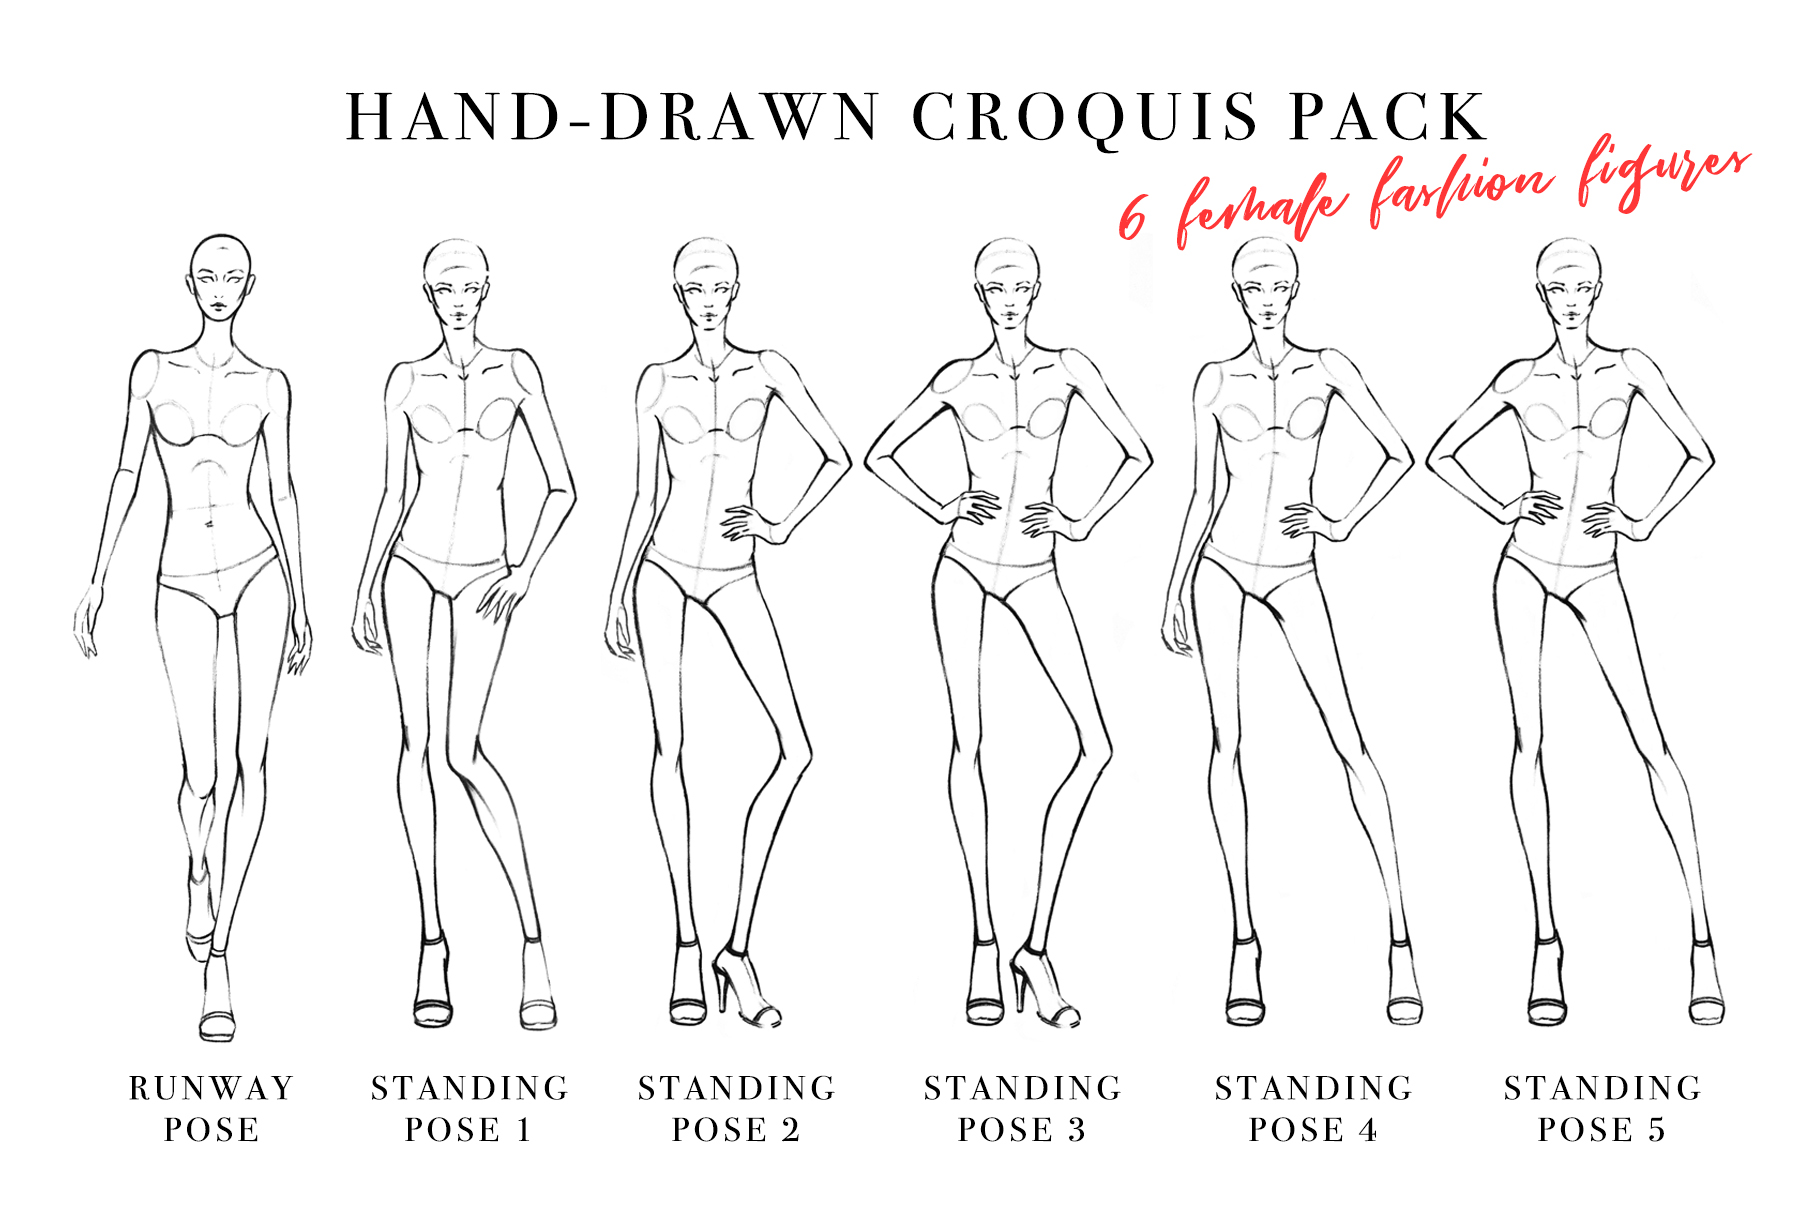 Female Figure Croquis Pack for Fashion Illustration example image 1